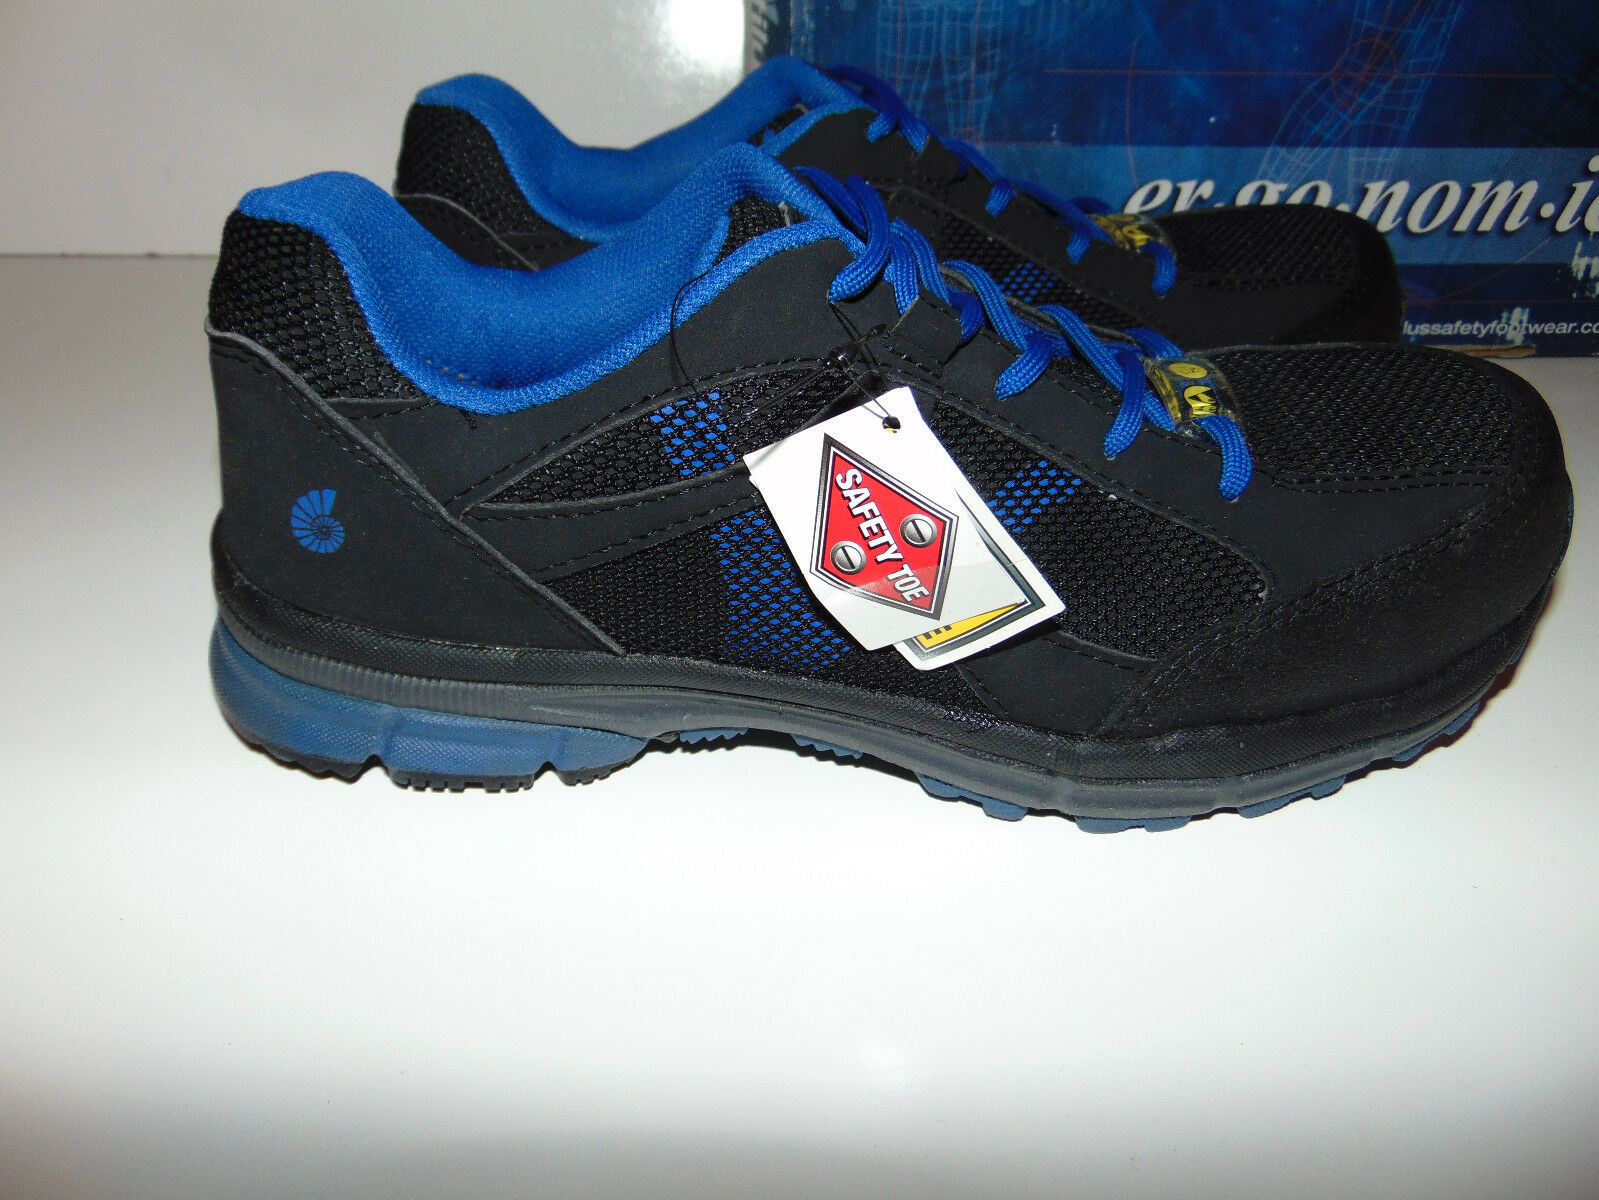 e3228fd21aba ... Nautilus Men s Blue Athletic Work Shoes Shoes Shoes - STEEL Toe - N1731  ALL SIZES ...